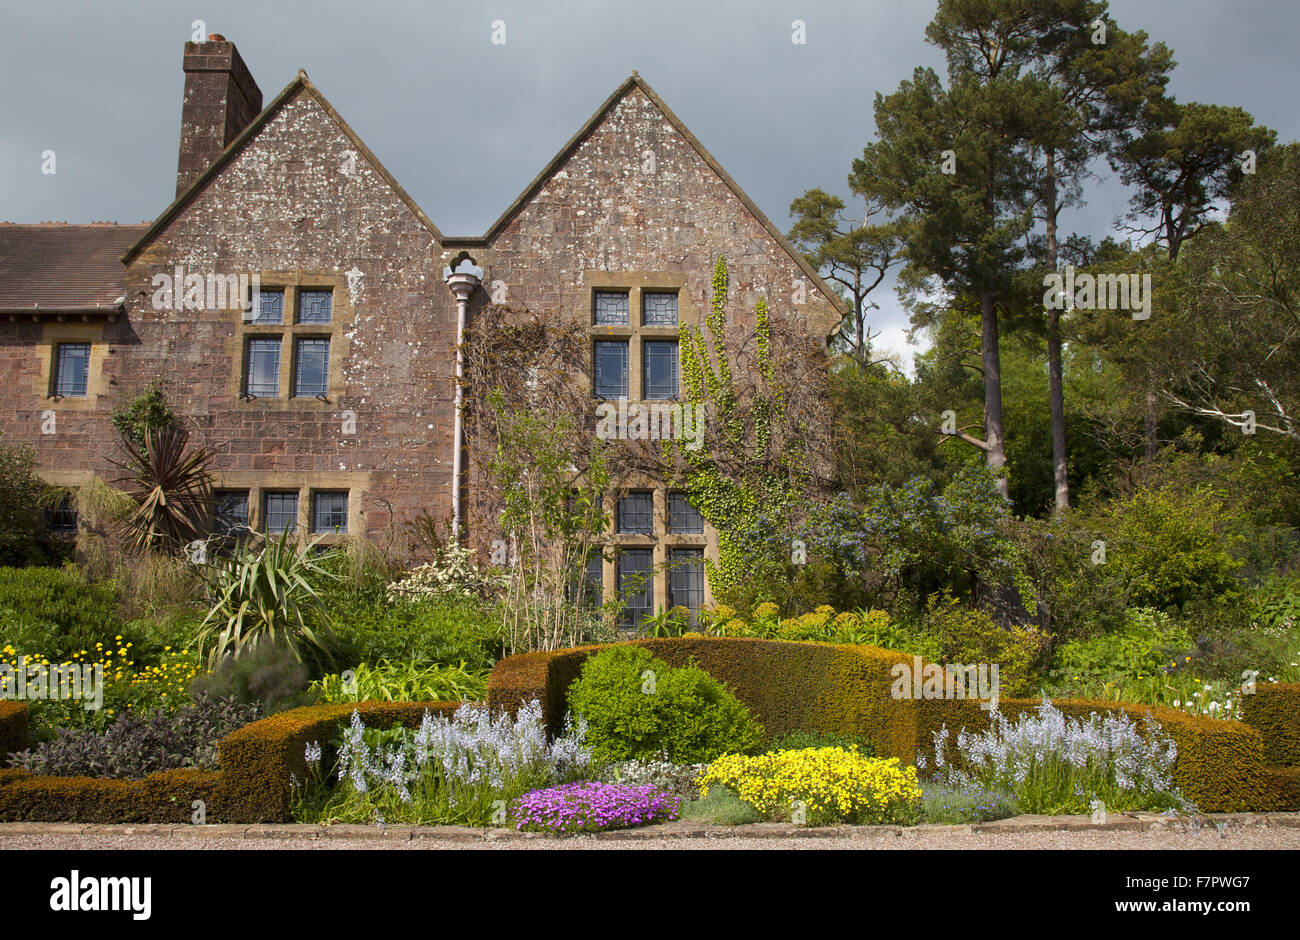 The house and gardens at Knightshayes, Devon. Knightshayes is a spectacular Gothic Revival house set in glorious - Stock Image